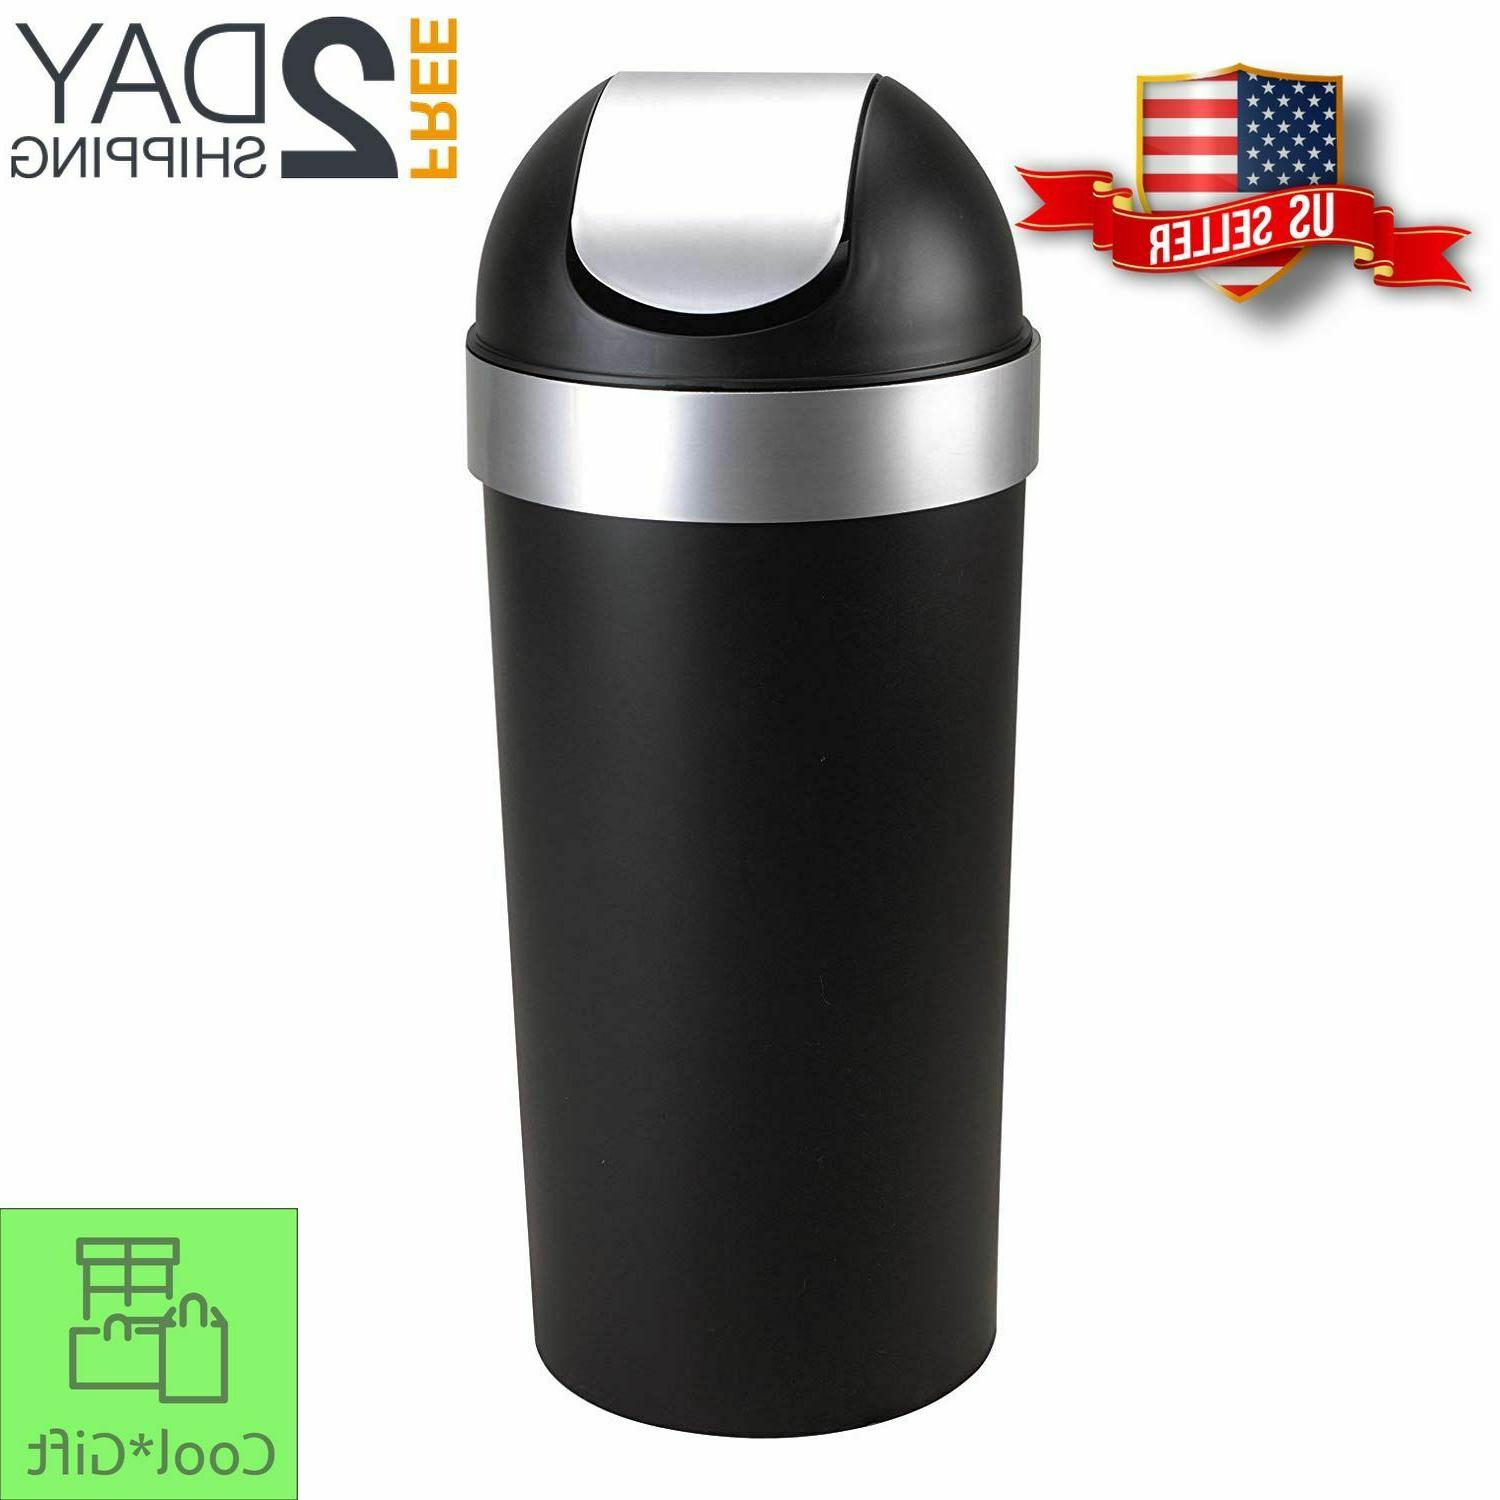 16 gallon swing top kitchen trash can